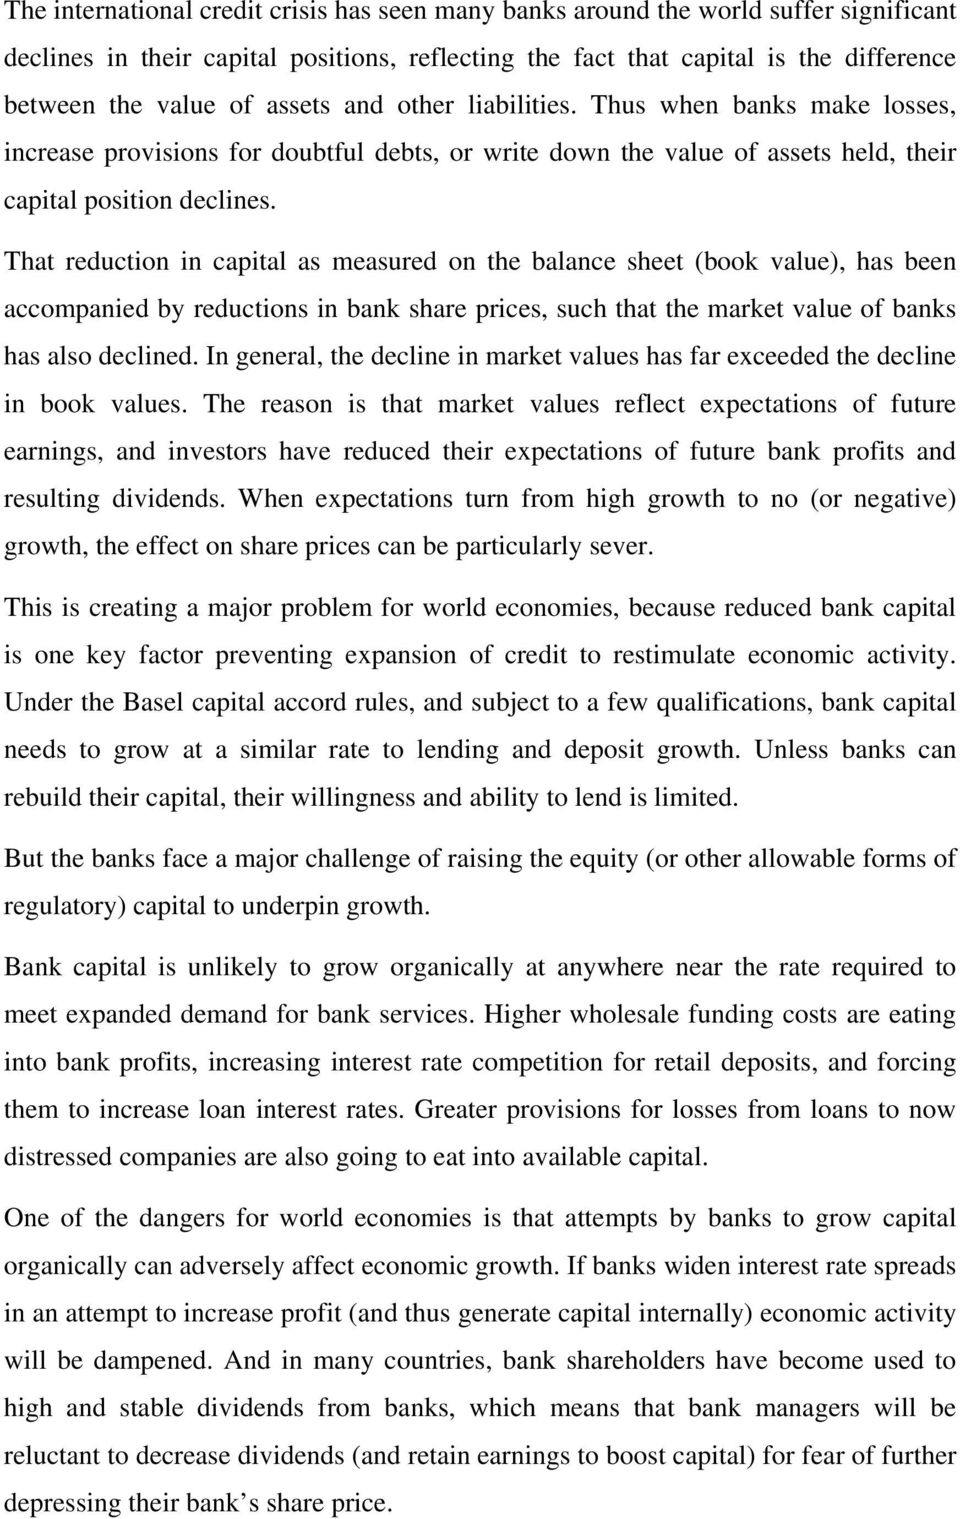 That reduction in capital as measured on the balance sheet (book value), has been accompanied by reductions in bank share prices, such that the market value of banks has also declined.